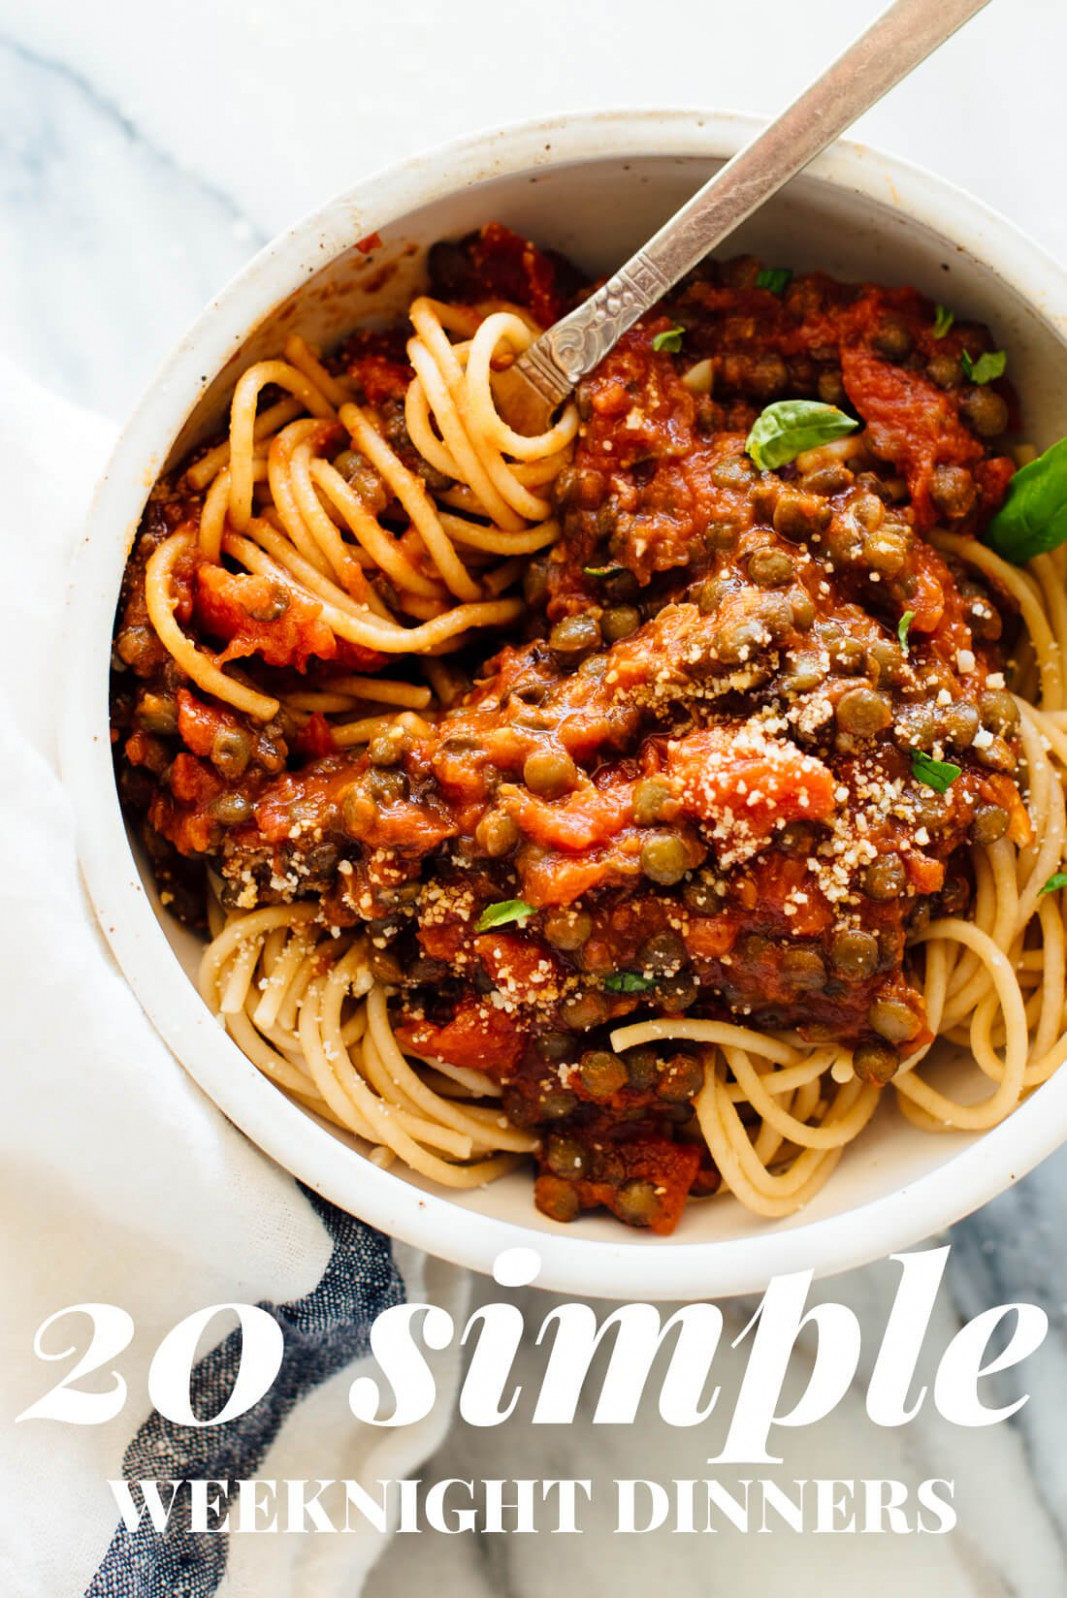 13 Simple Vegetarian Dinner Recipes - Cookie And Kate - Recipes Easy Dinner For Two